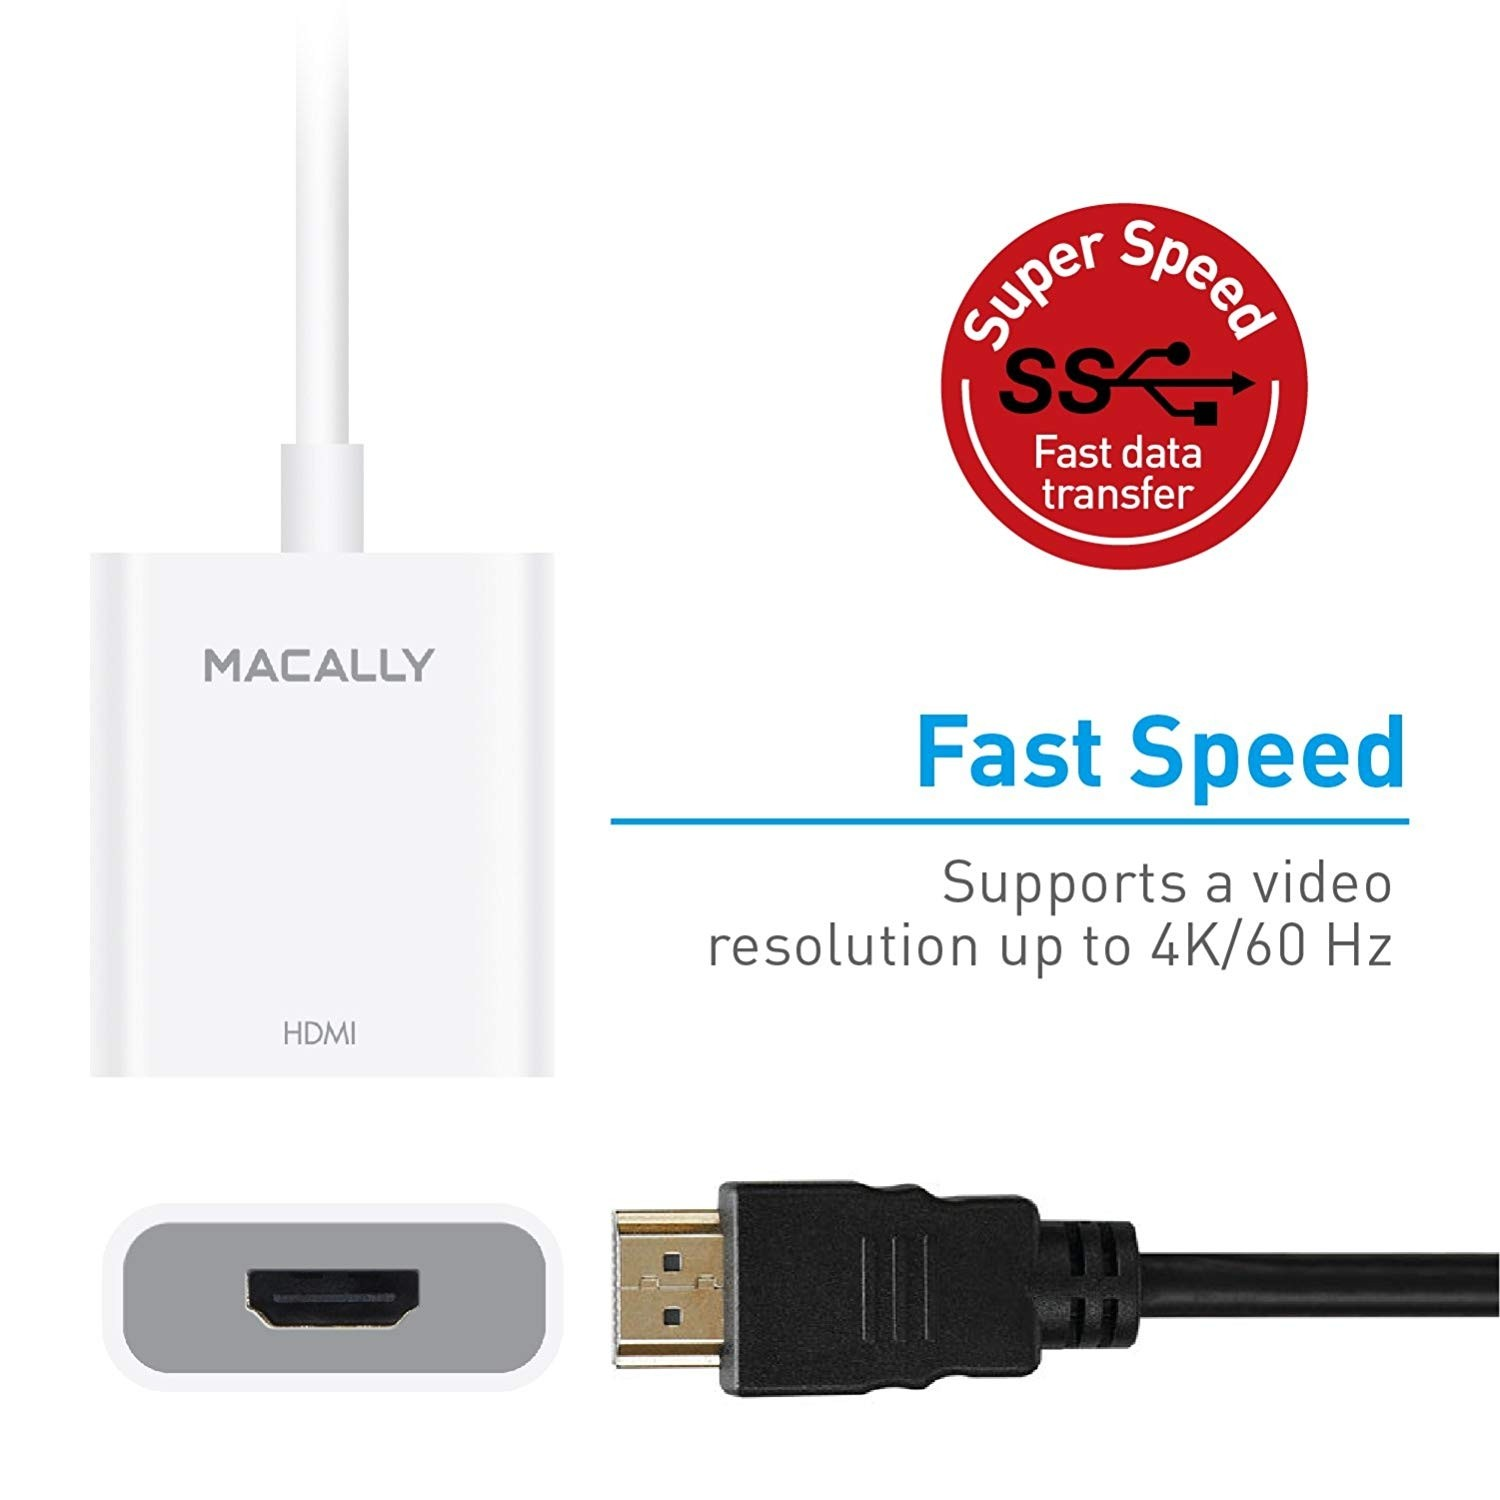 Macally USB-C to HDMI Adapter (4K/60Hz) - Thunderbolt 3 Compatible Converter for USB Type C , UCH4K60